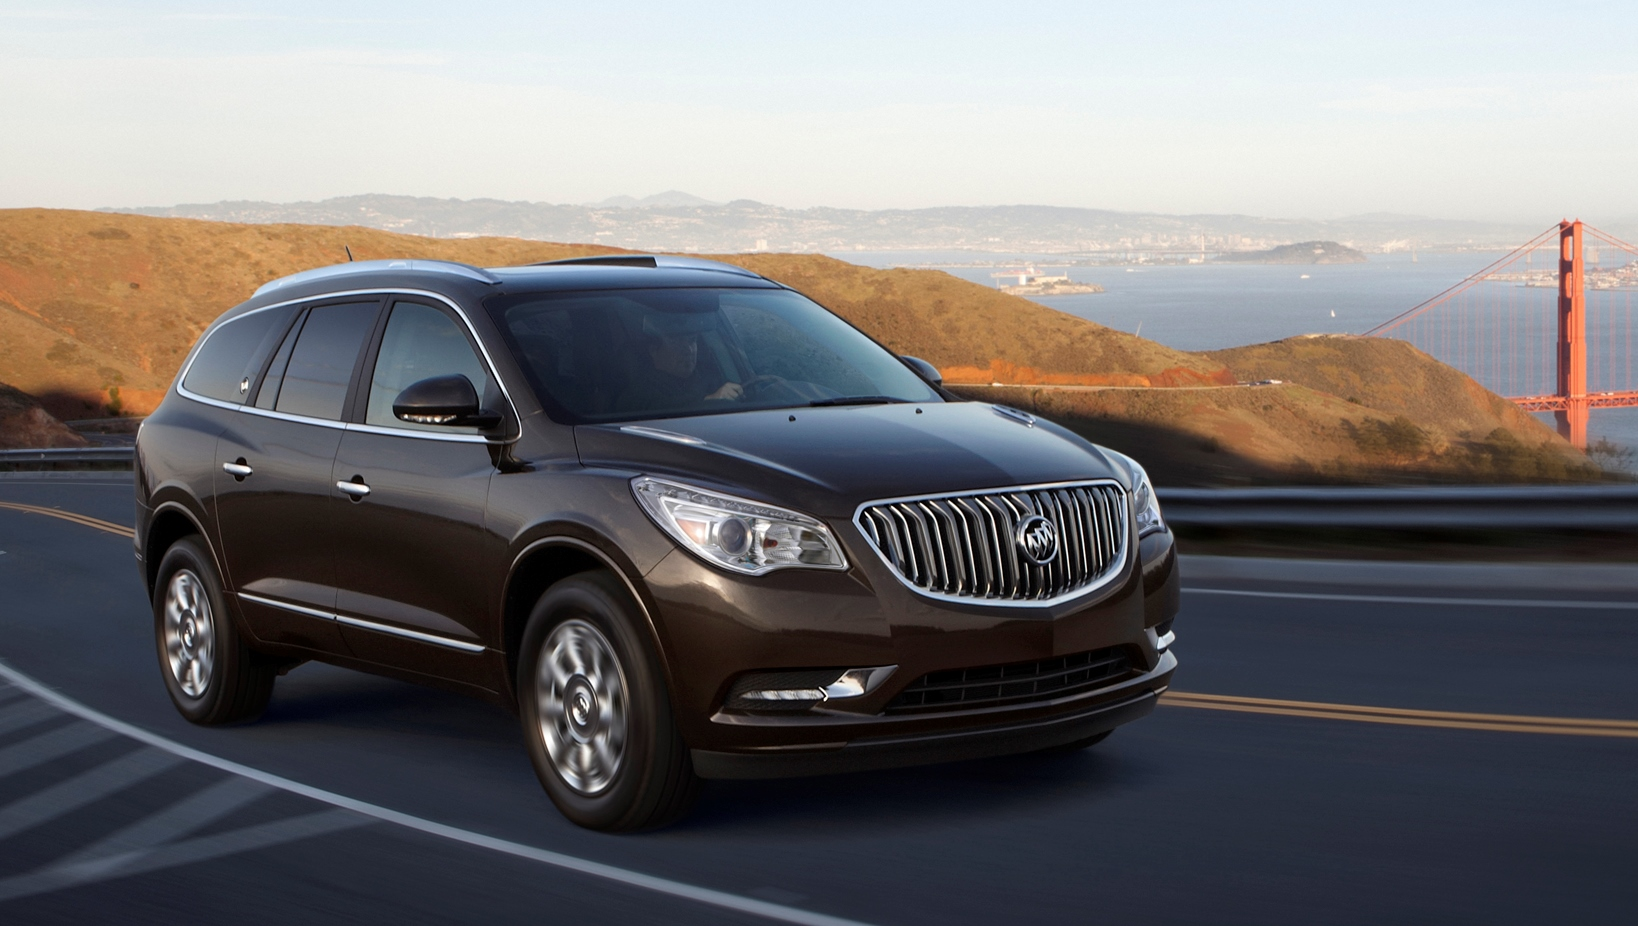 Amazing 2014 Buick Enclave | Top Speed. »